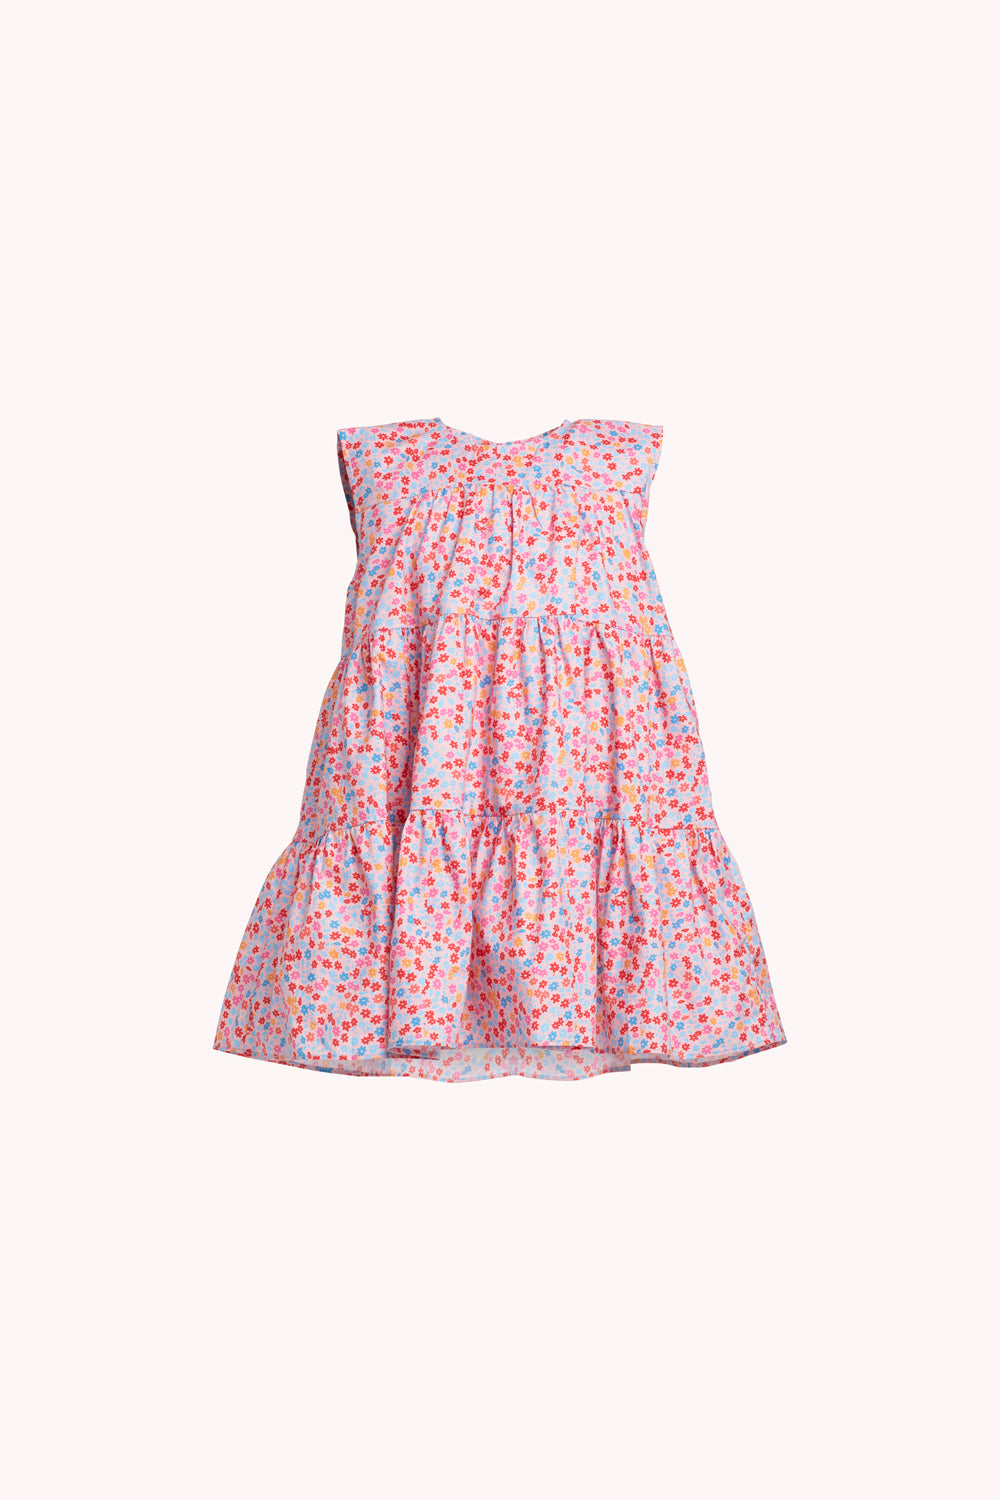 Lizzie Dress | Pink Ditsy Floral